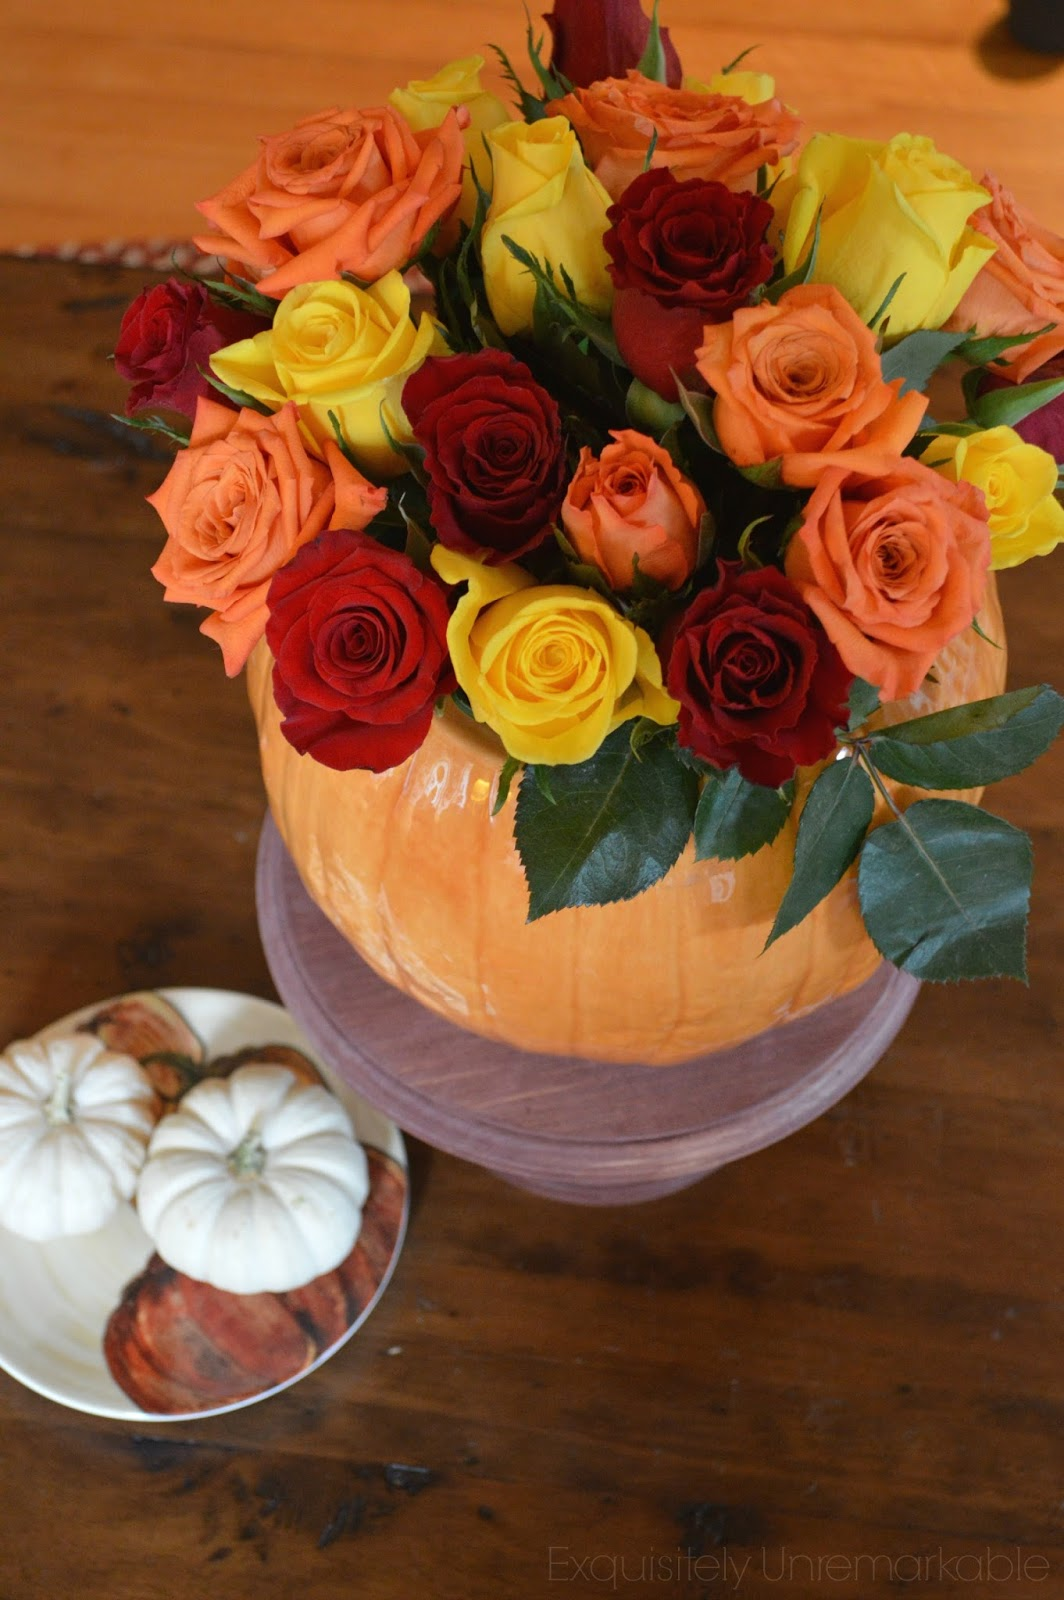 Pumpkin vase rose Floral Arrangement on cake stand with small pumpkins on a pumpkin dish nearby